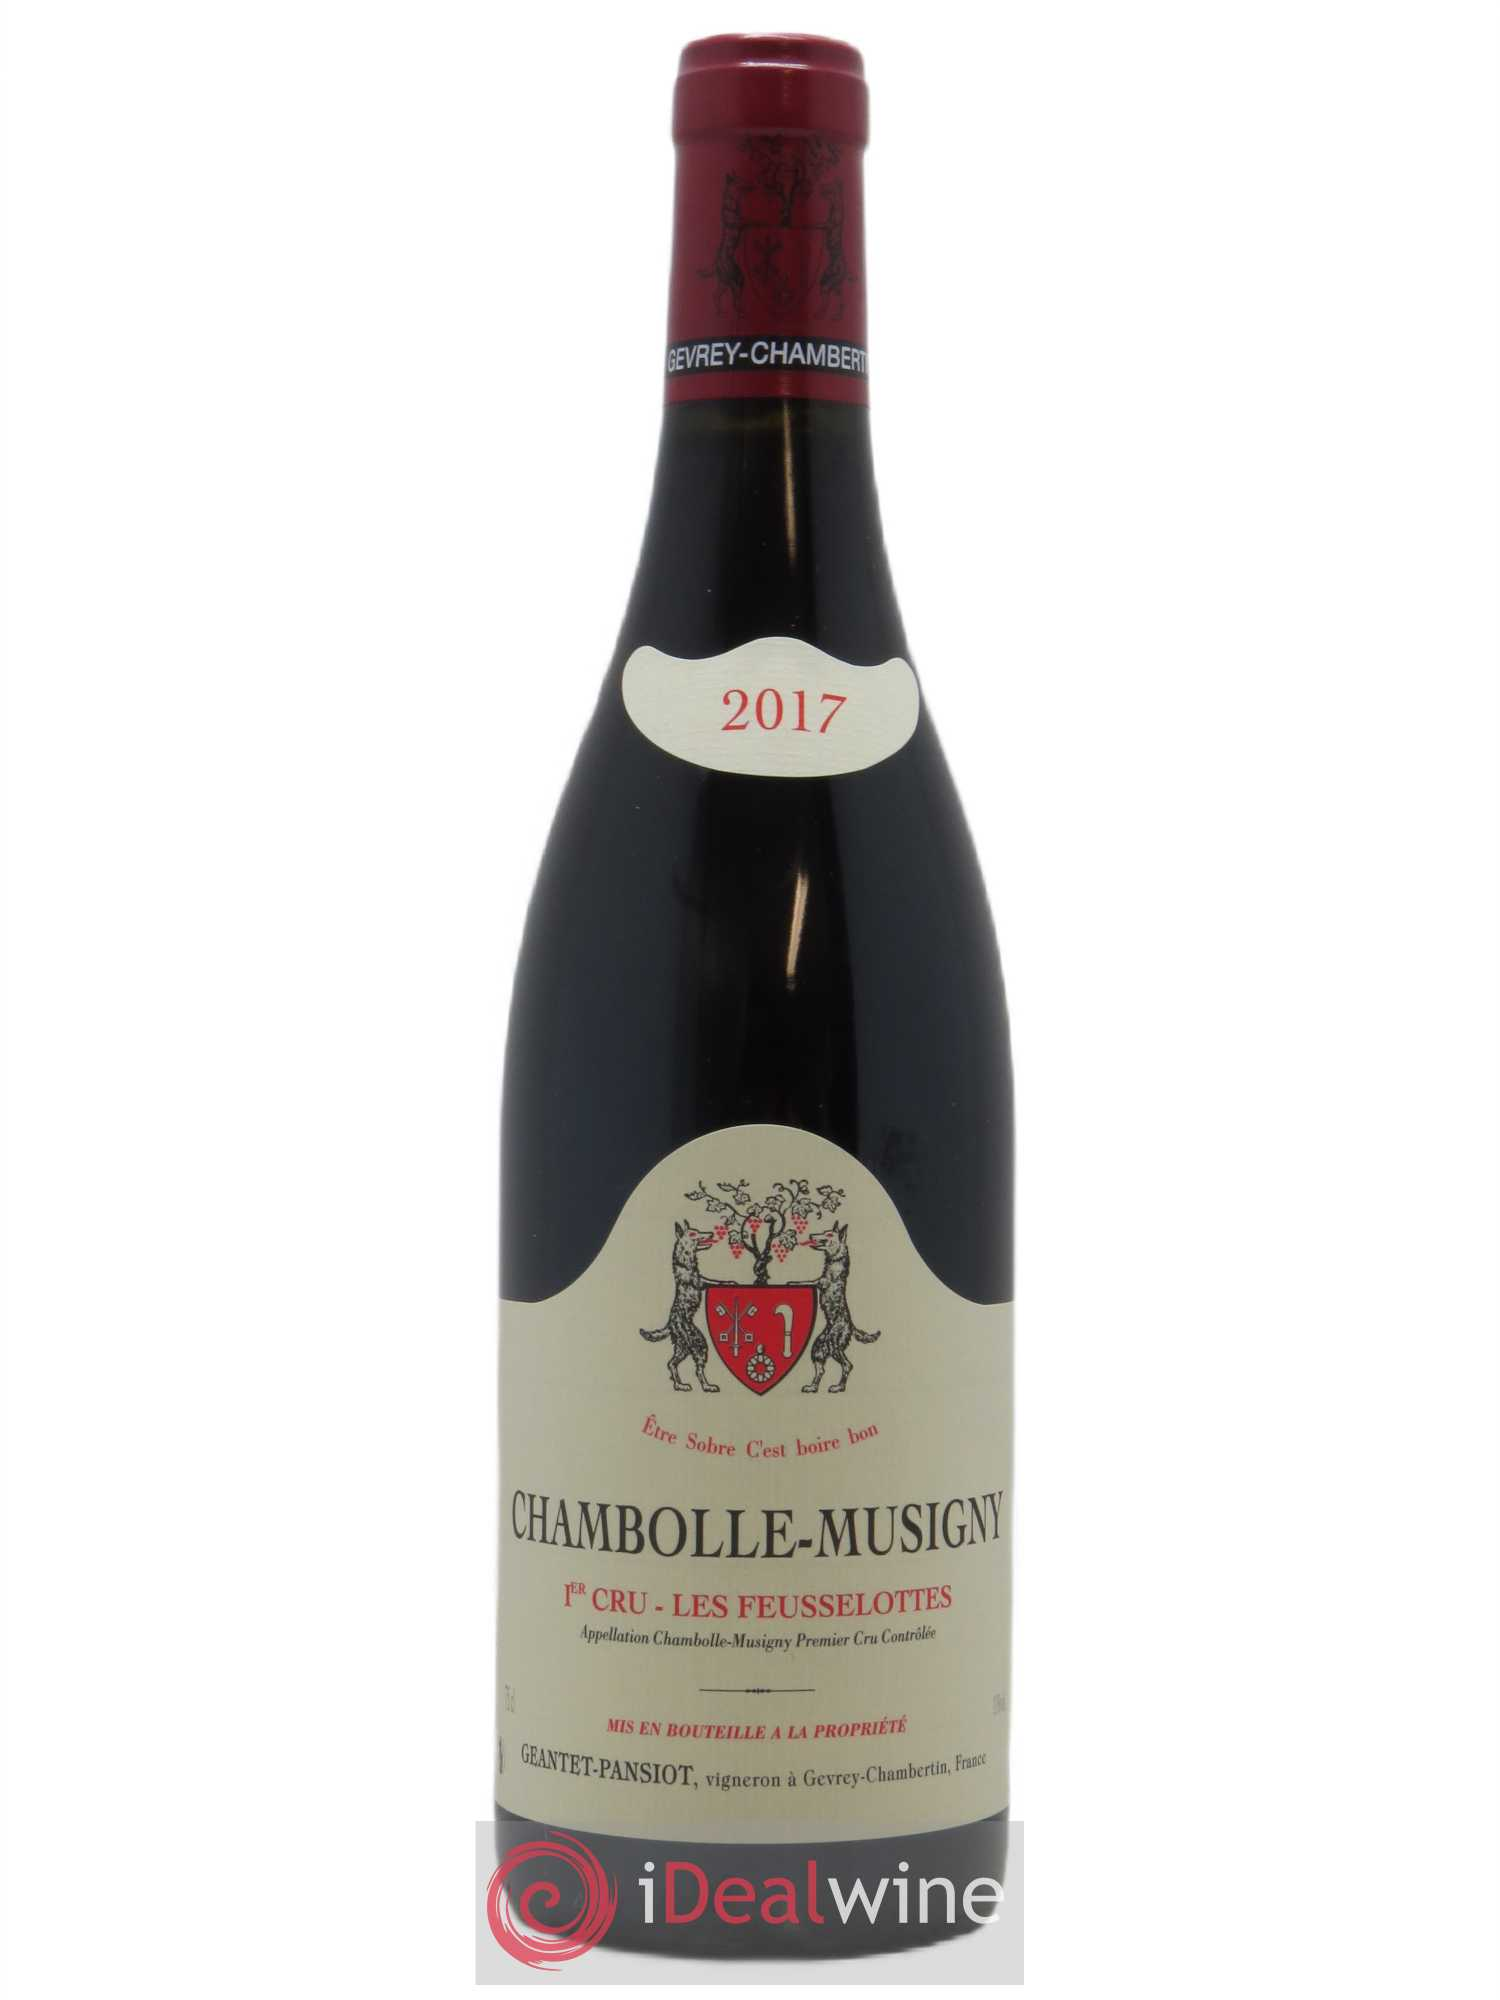 Chambolle-Musigny 1er Cru Les Feusselottes Geantet-Pansiot  2017 - Lot of 1 Bottle